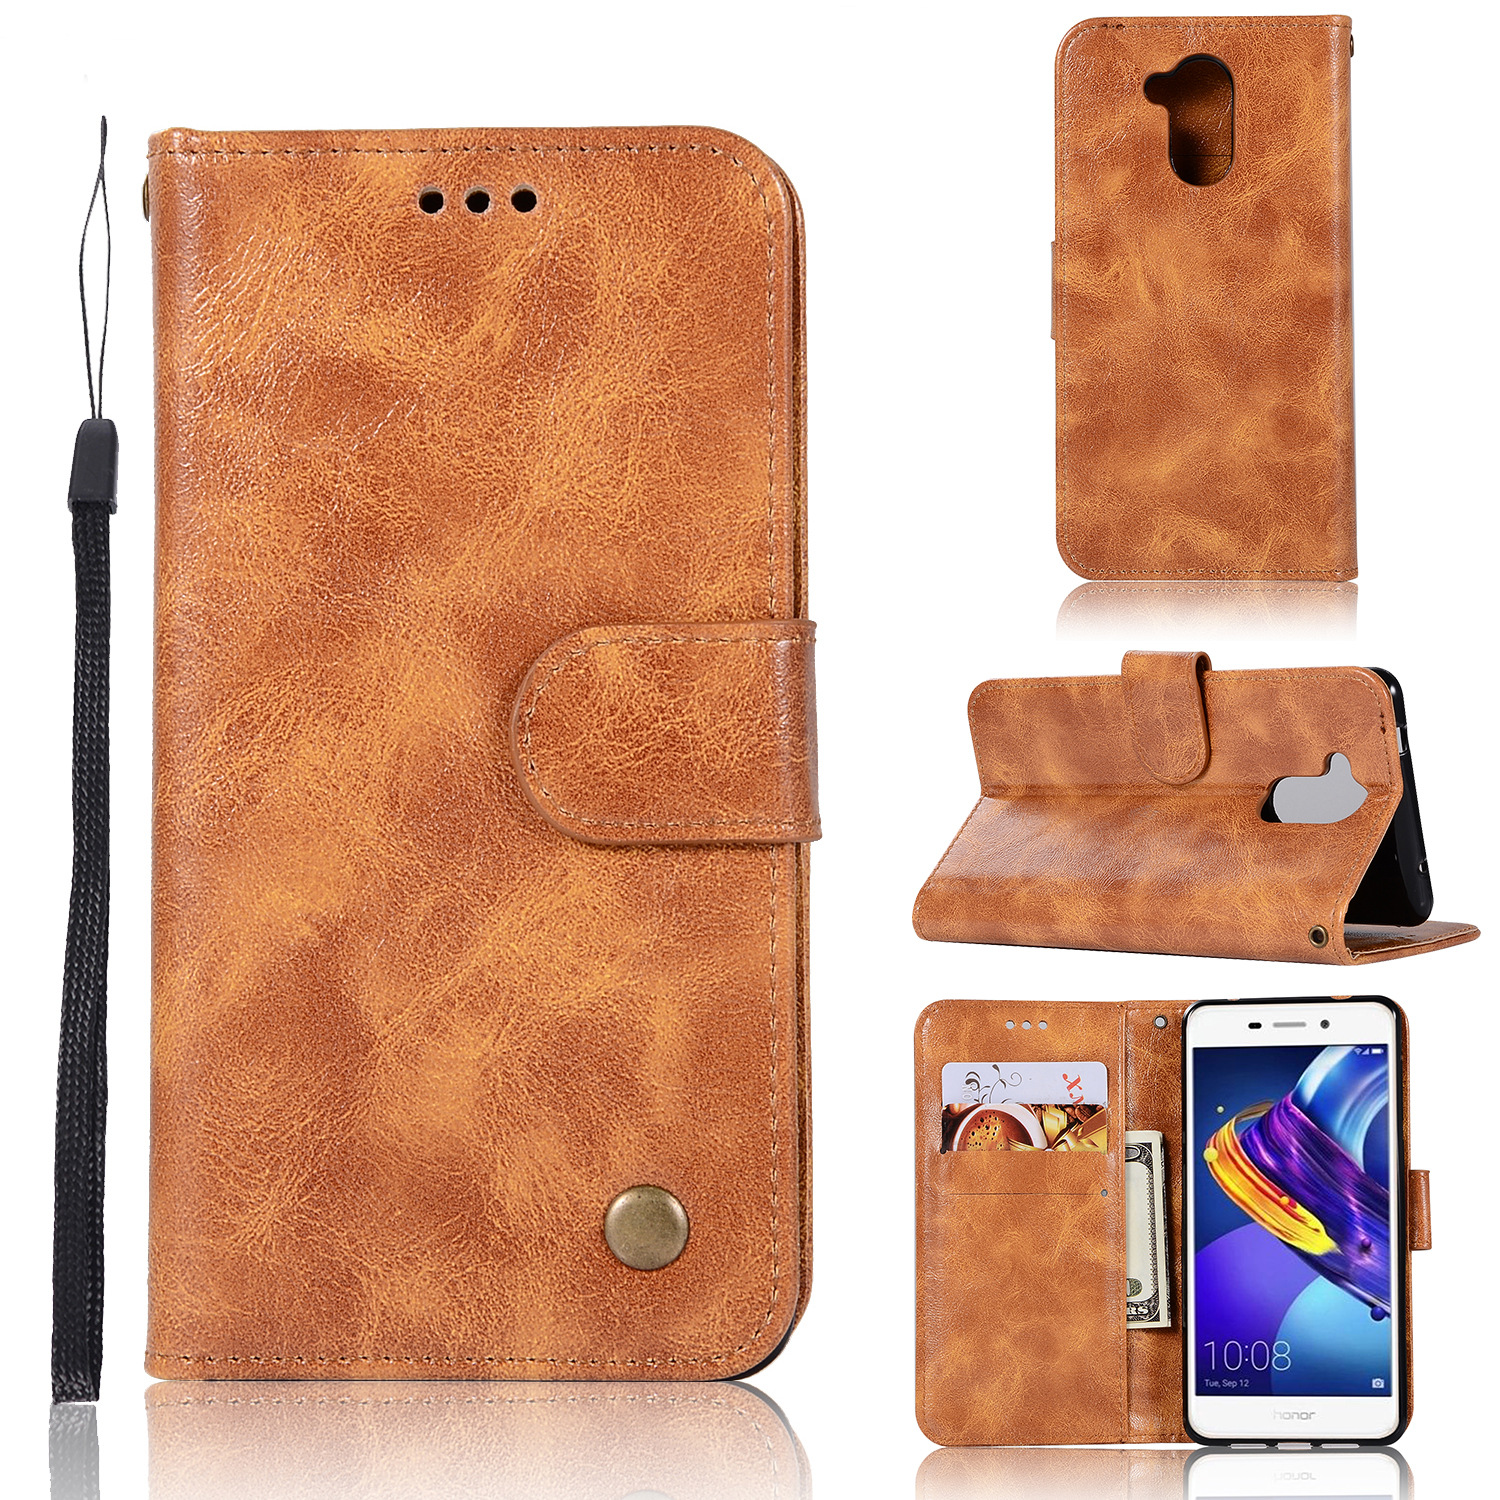 Image 2 - 20PCS Retro Business Cases Wallet For Huawei Honor 6C Pro Case Retro Flip Book Leather Cover For Huawei 6C Pro Phone Protector-in Wallet Cases from Cellphones & Telecommunications